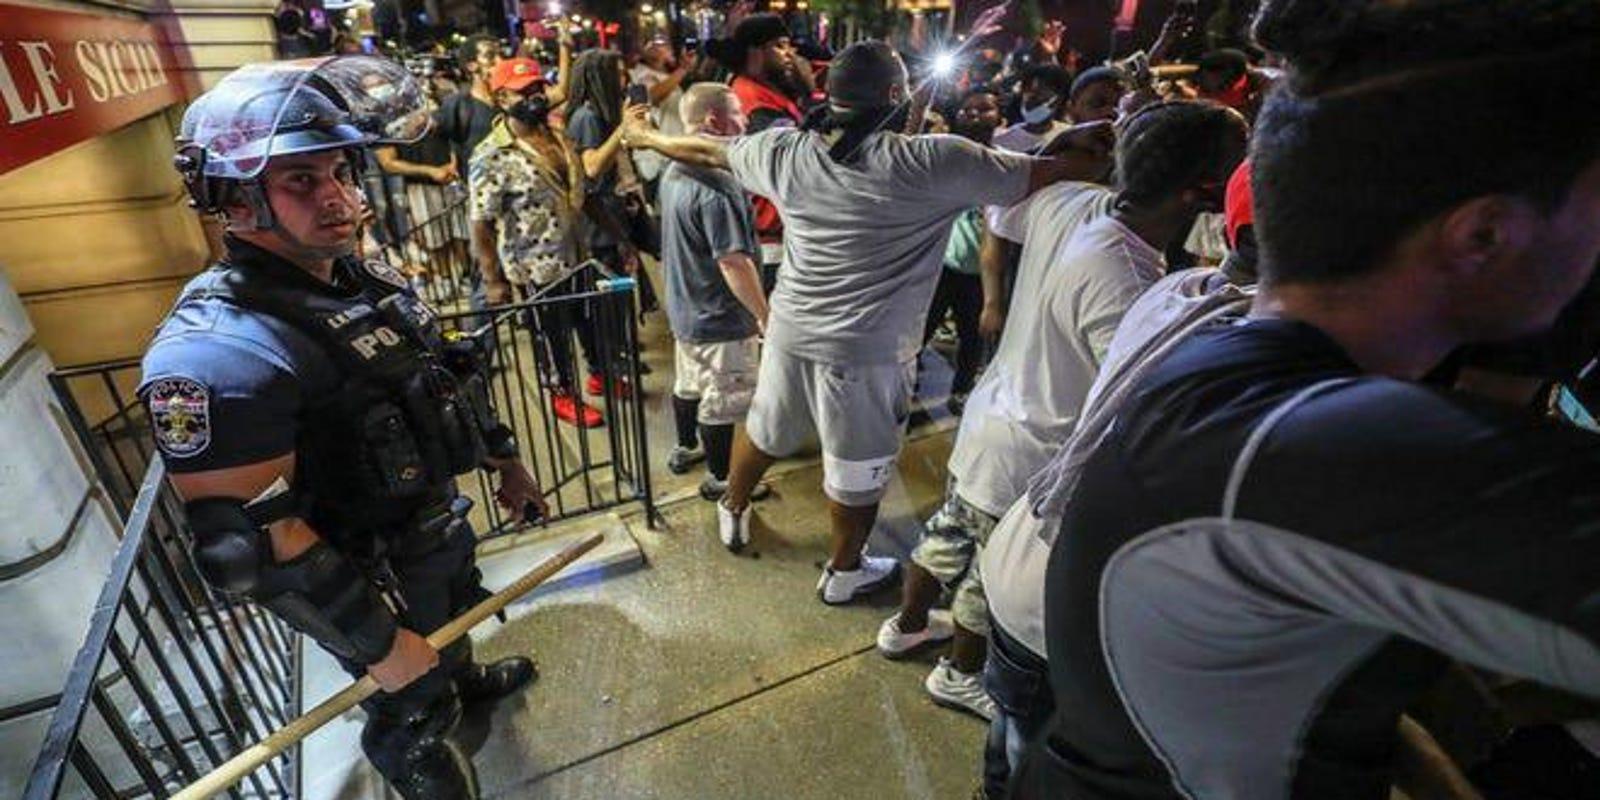 Fact check: BLM protesters in Louisville protected a lone police officer